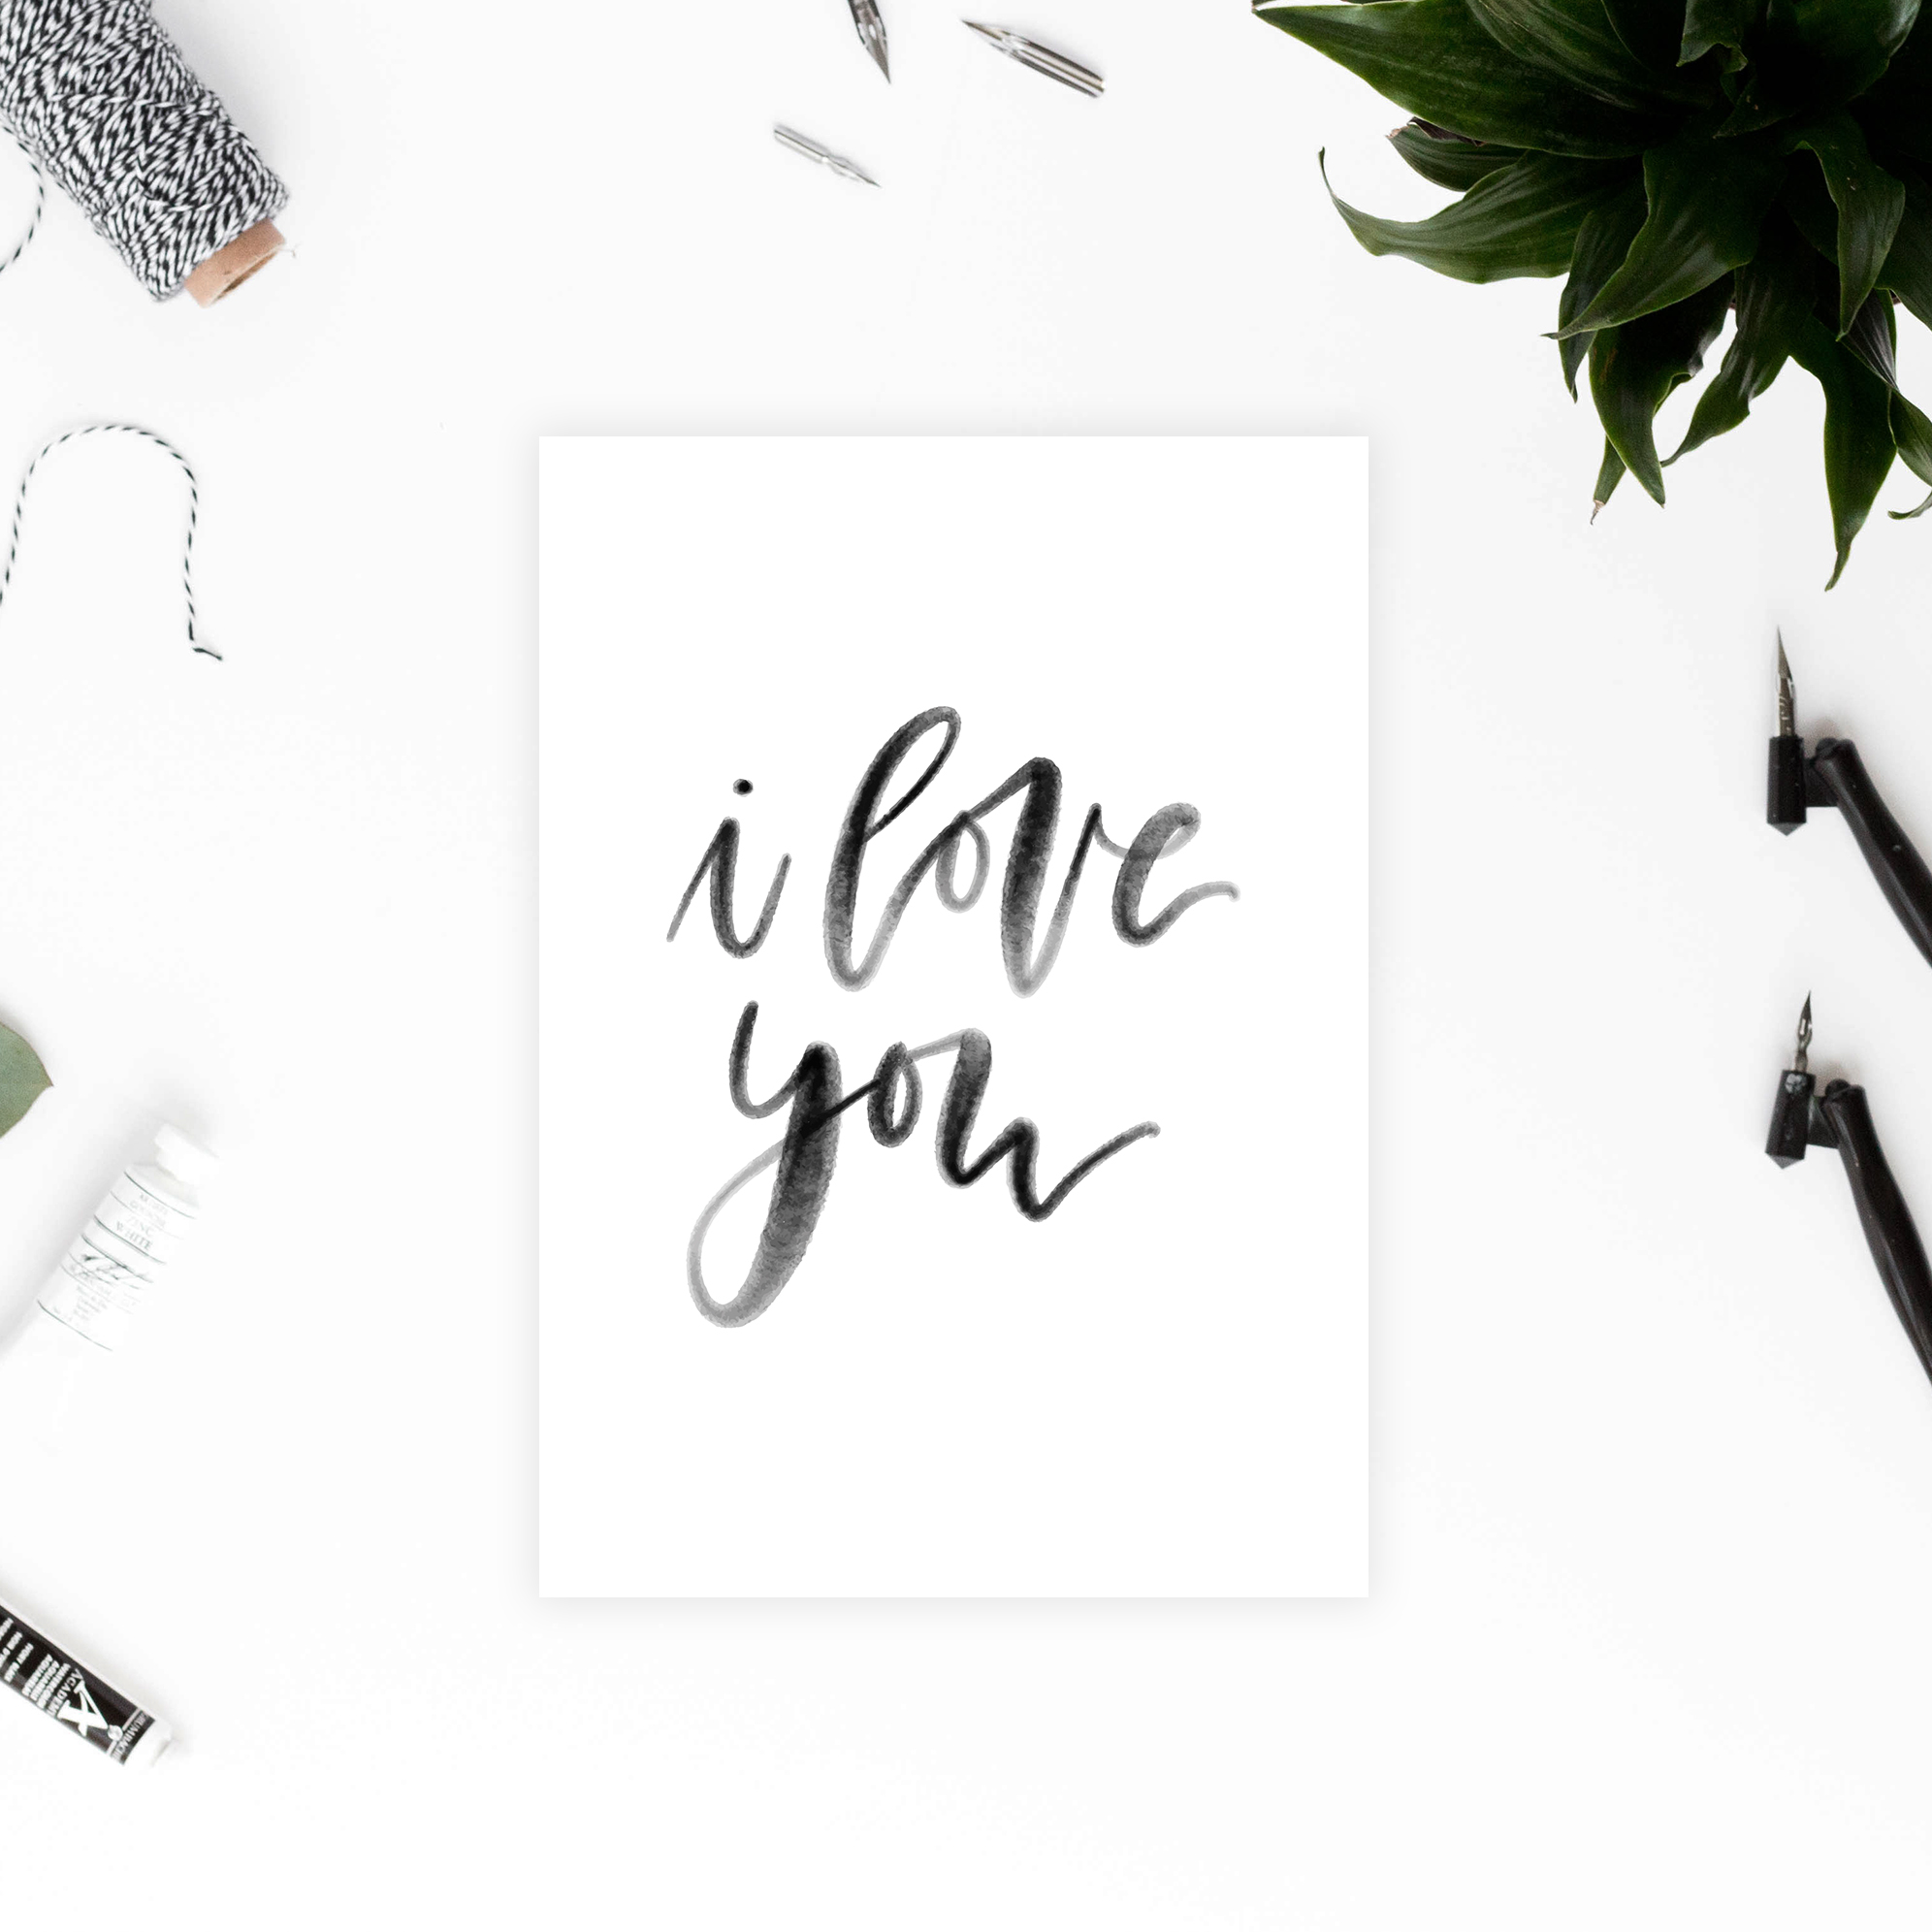 I Love You Card -Minimalist Greeting Card - DIY Printable Valentines/Anniversary Card - Watercolor Bruch Lettering - True North Paper Co.